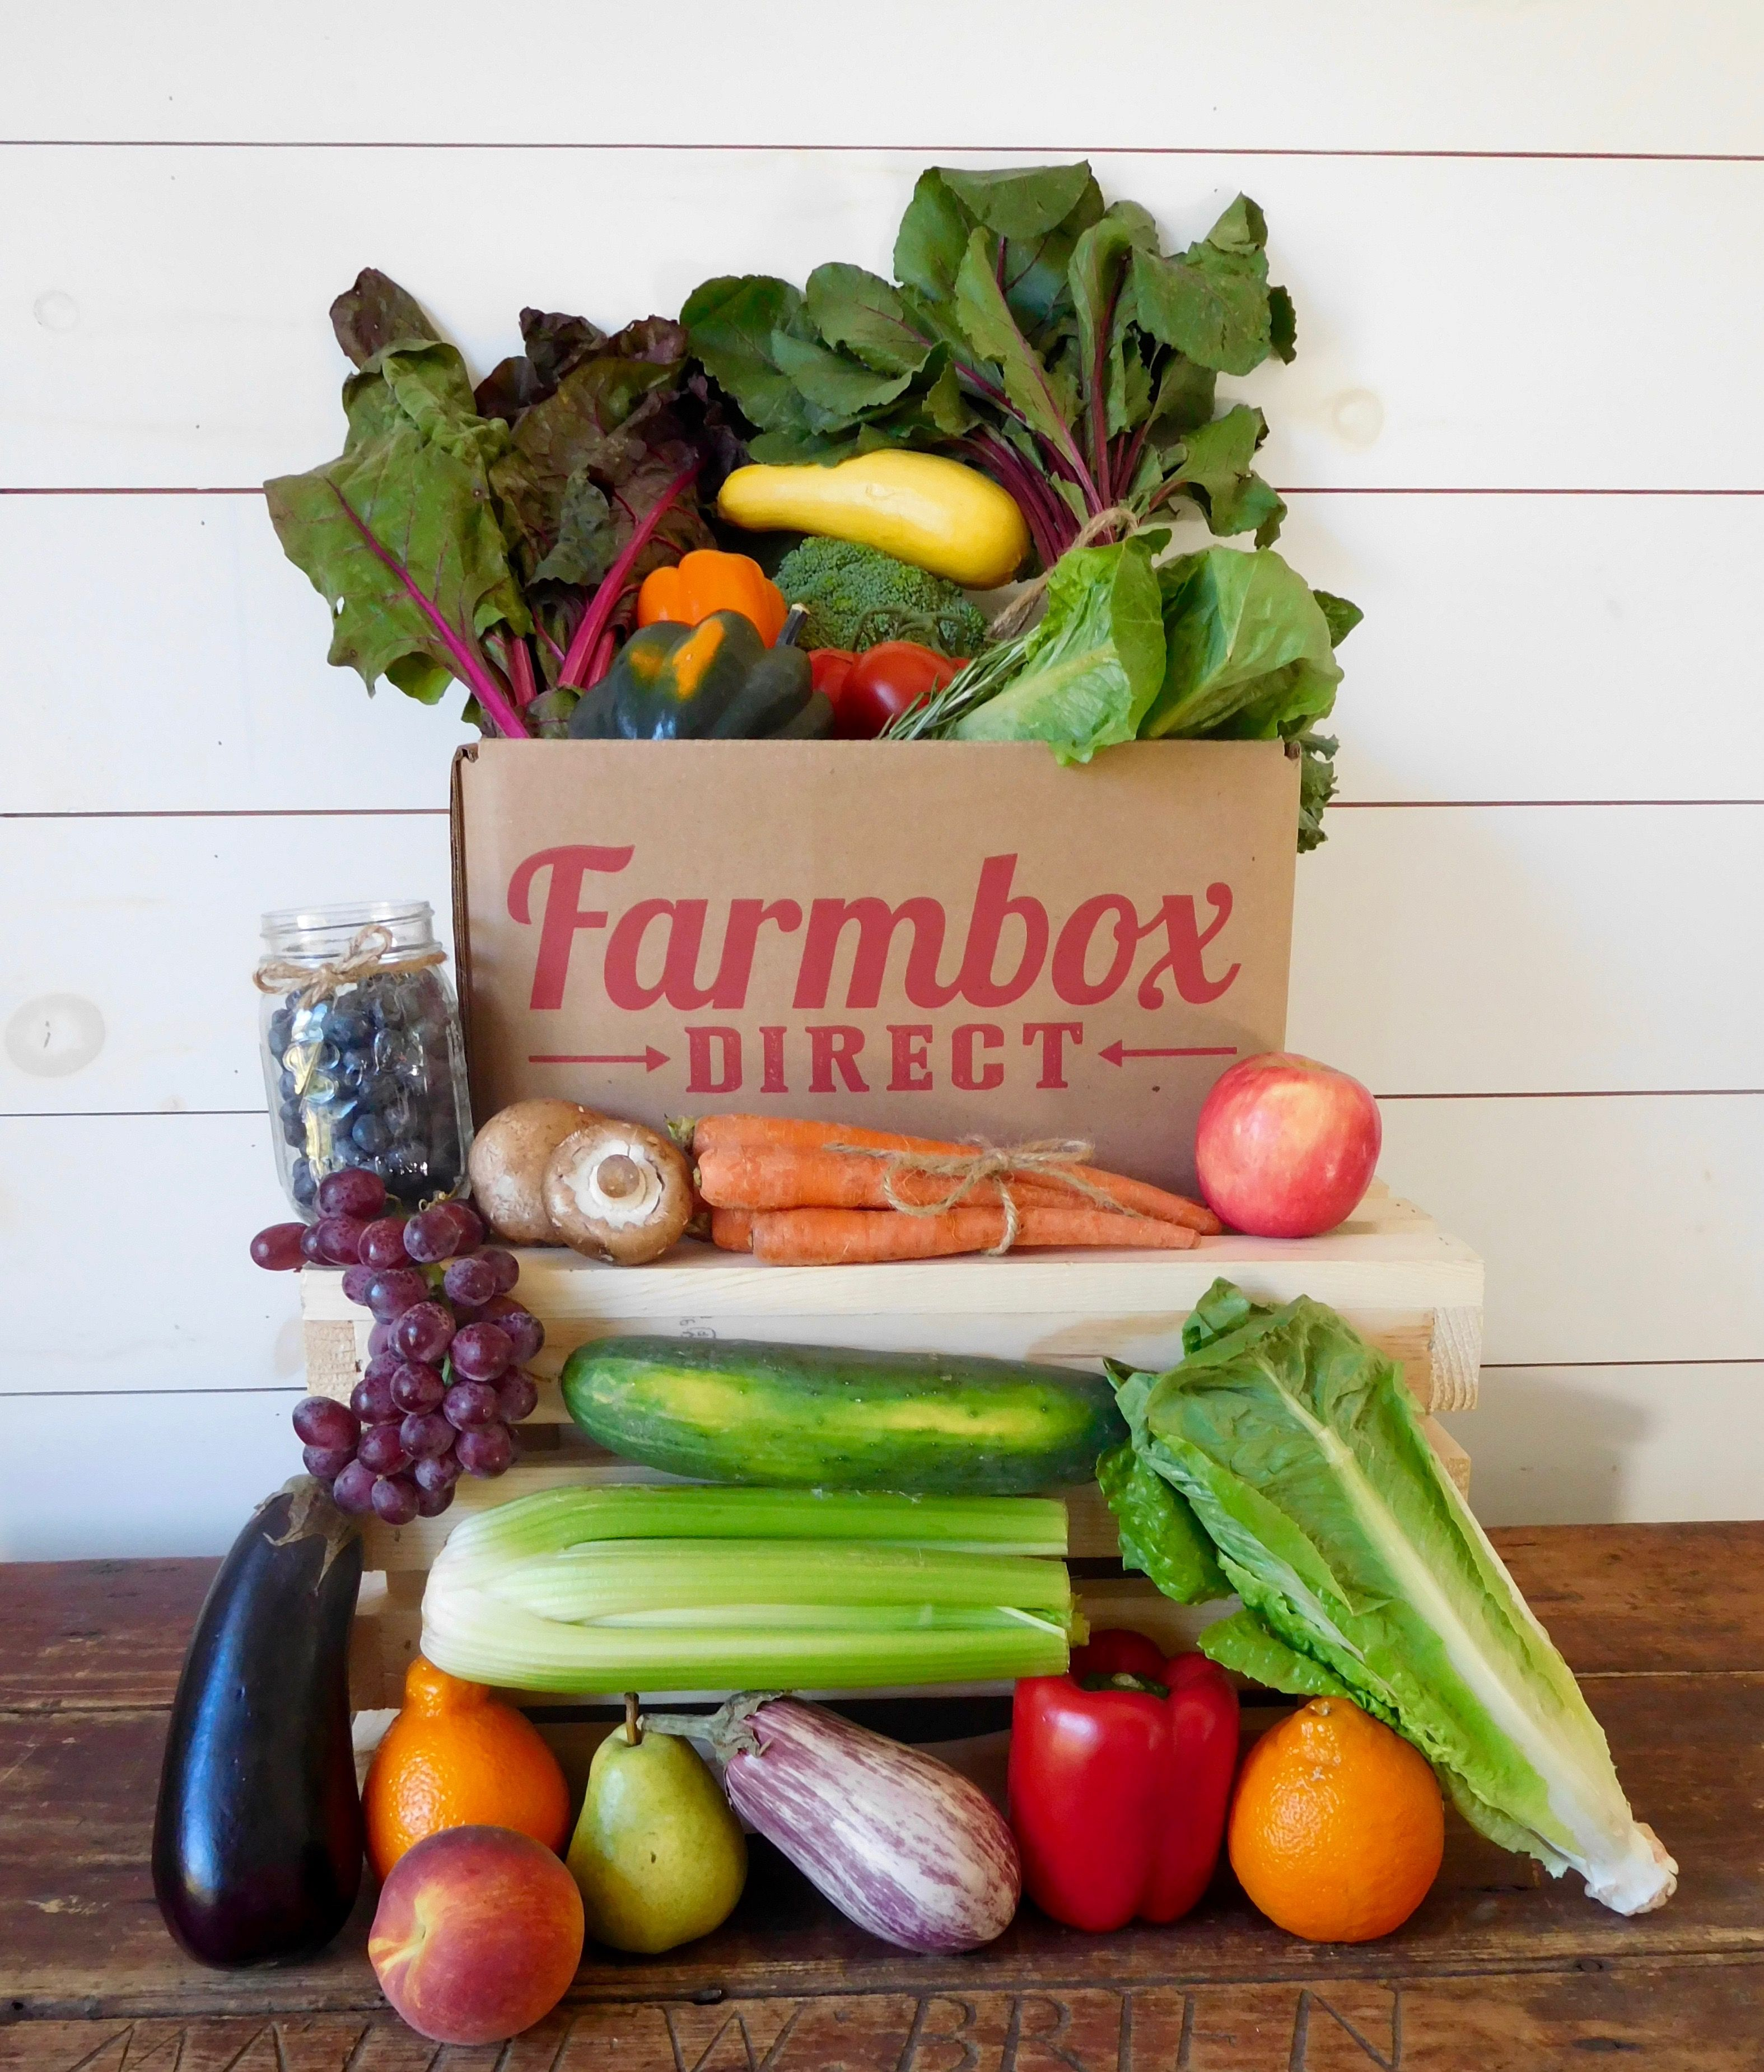 Make Eating Healthy Easy! Farm Fresh Produce Delivered